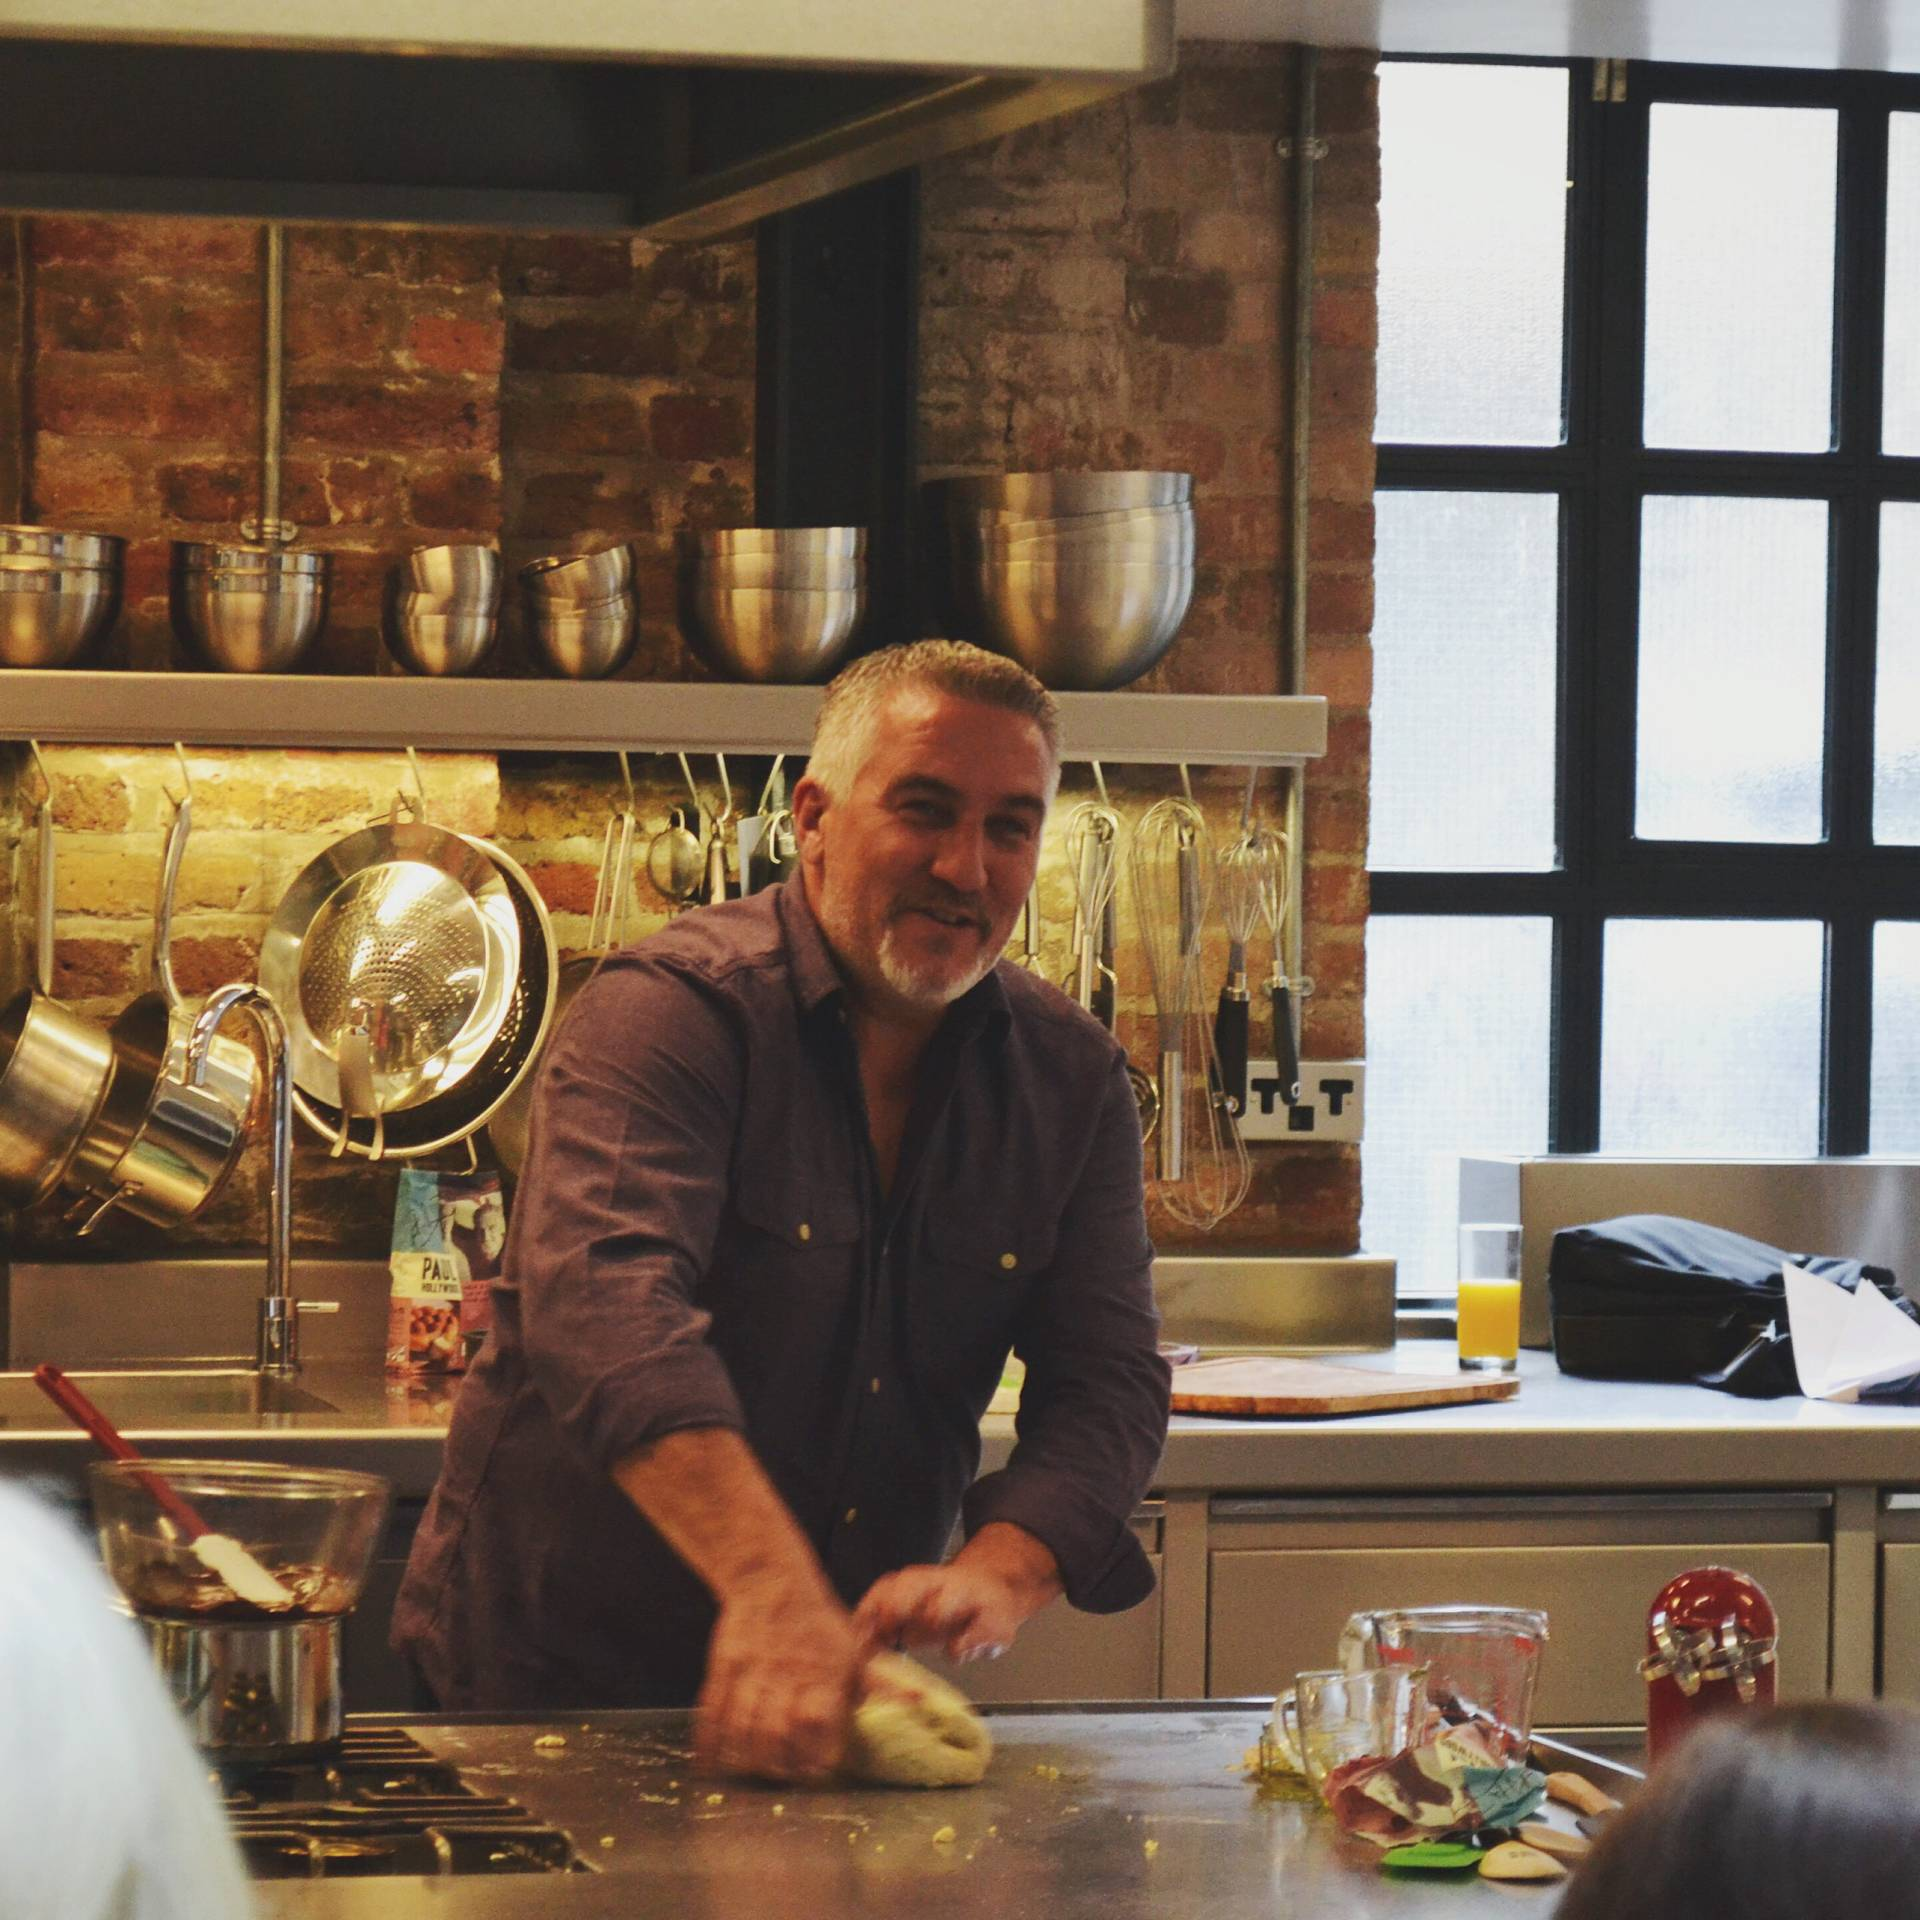 paul hollywood bakery mixes